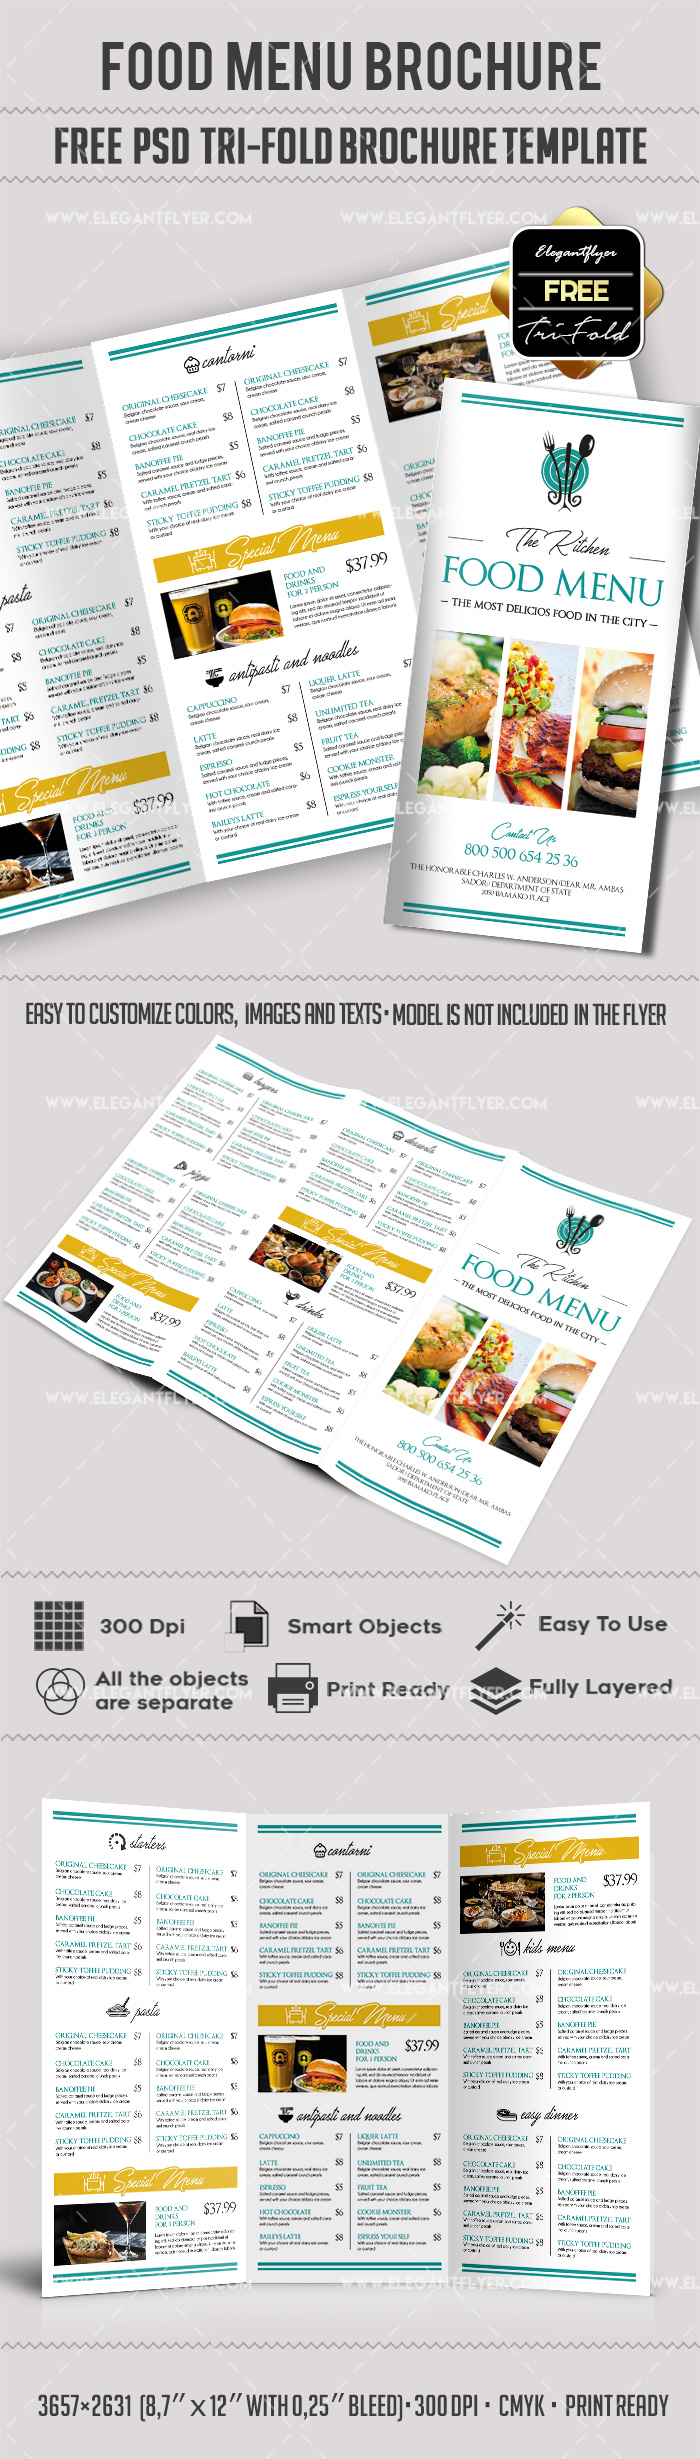 Free food menu tri fold psd brochure template by for Free flyer brochure templates